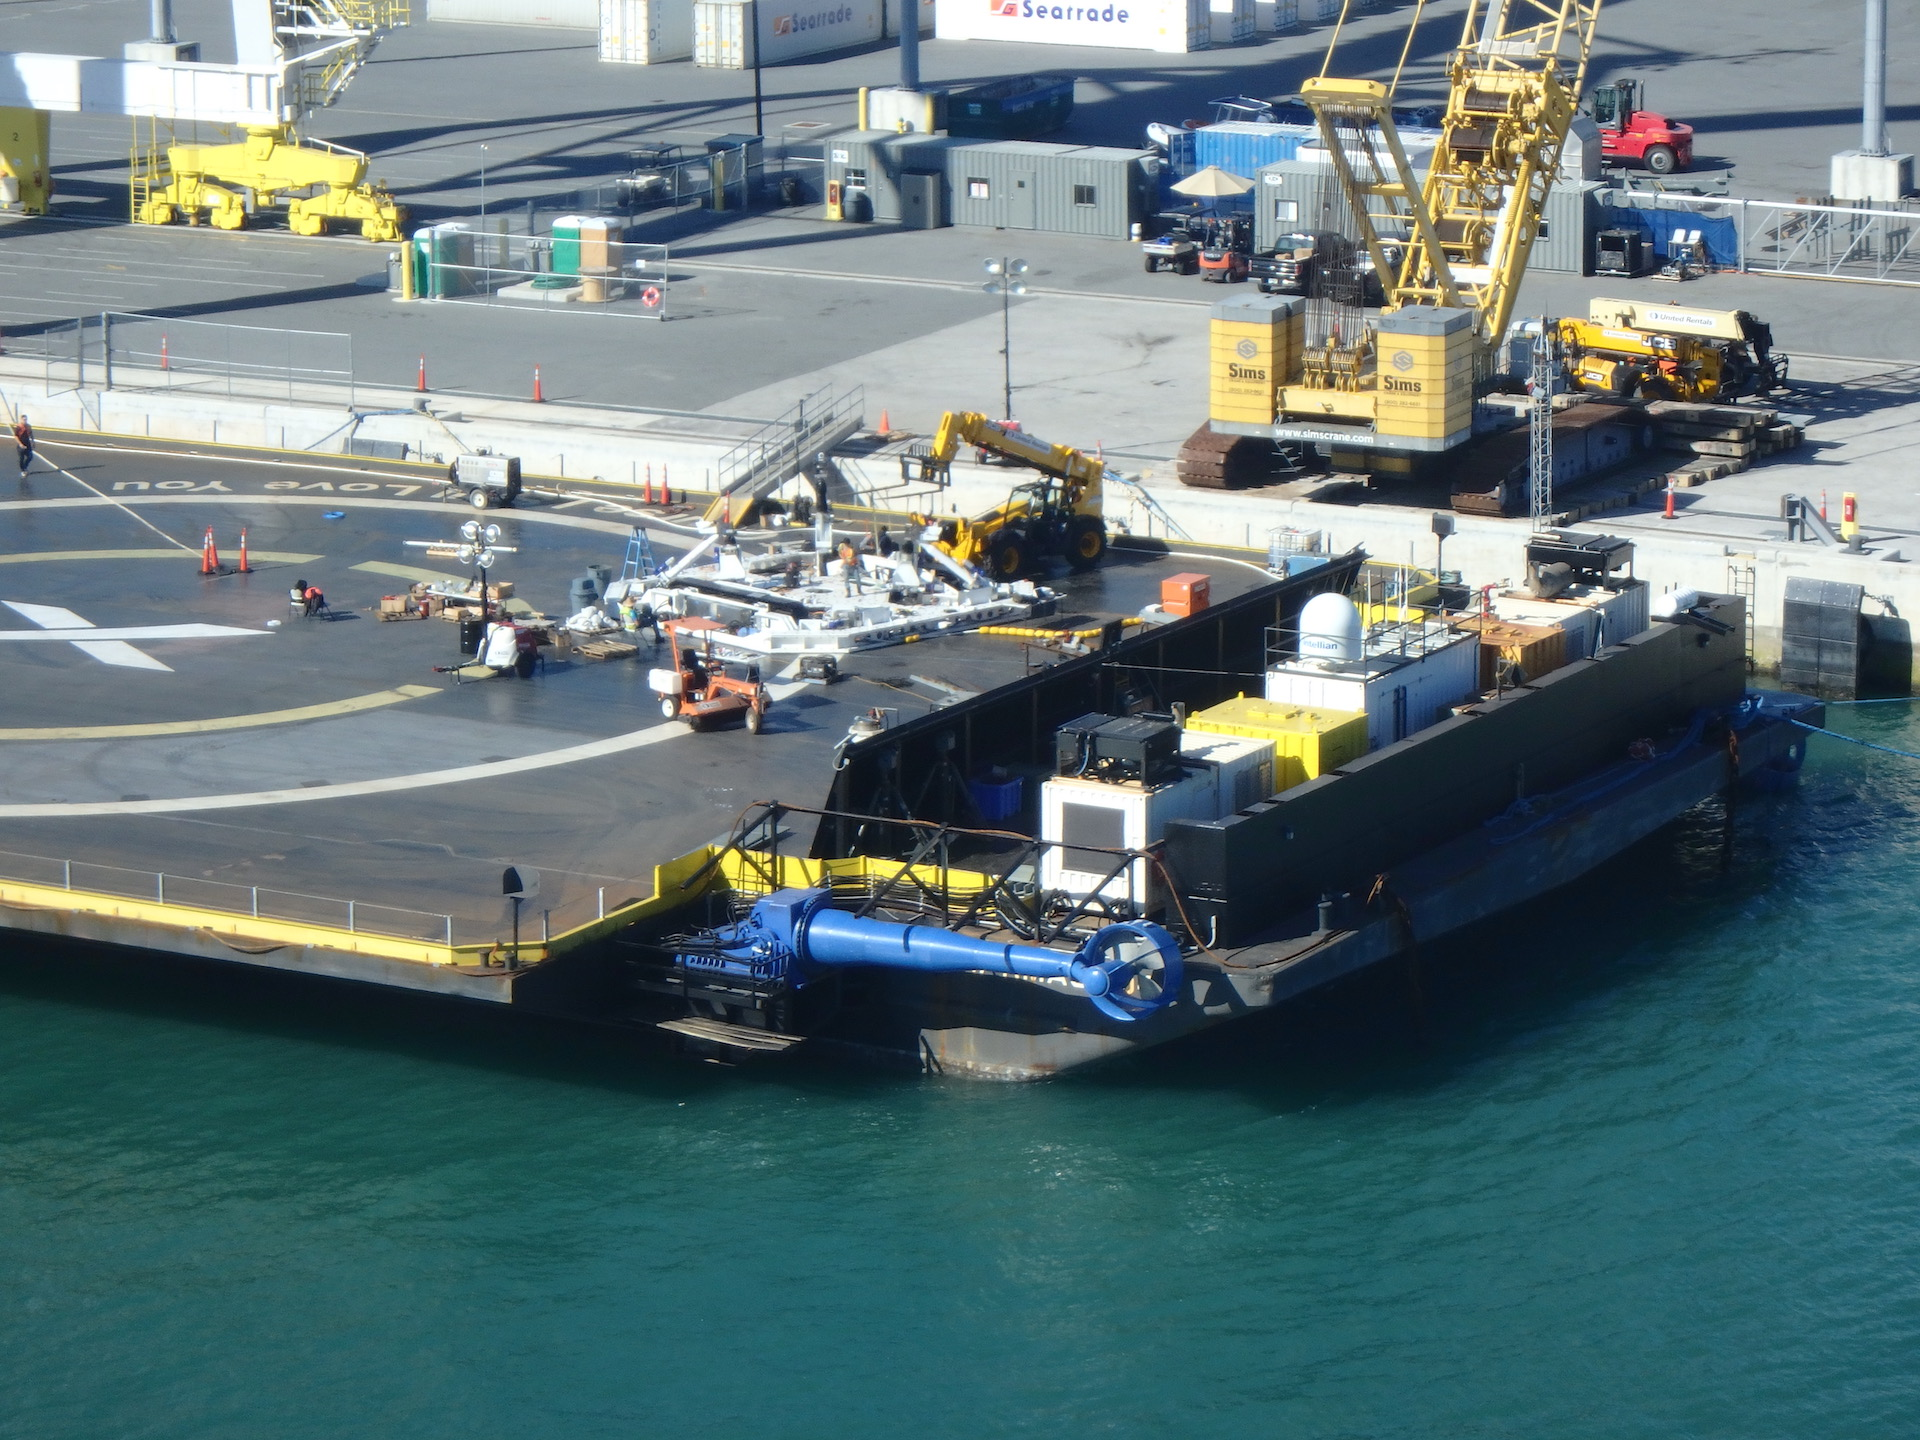 SpaceX-OCISLY-droneship-robot-optimus-prime-2